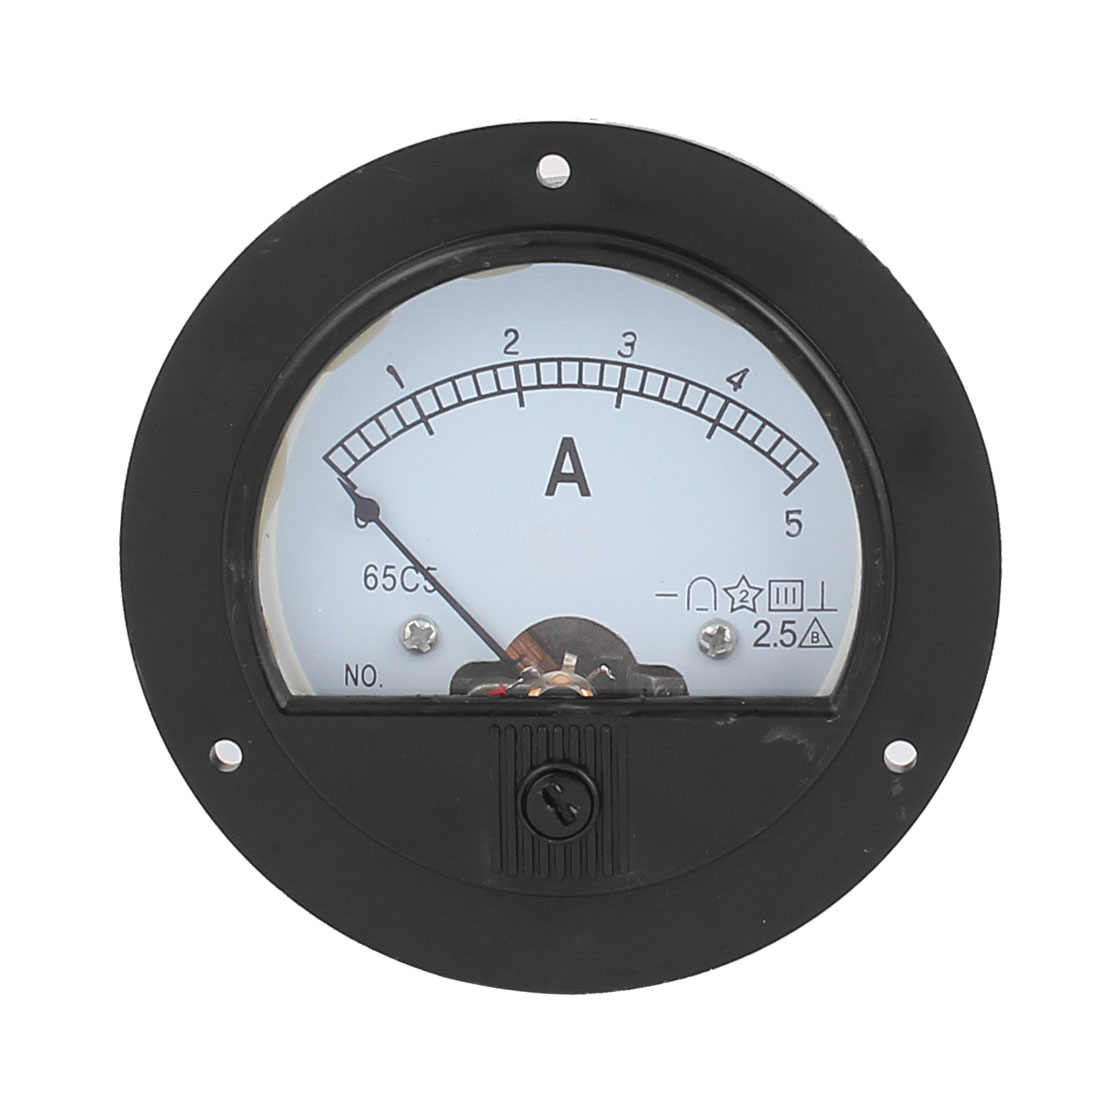 DC 0-5A Analogue Panel Current Meter Gauge Analog Ammeter